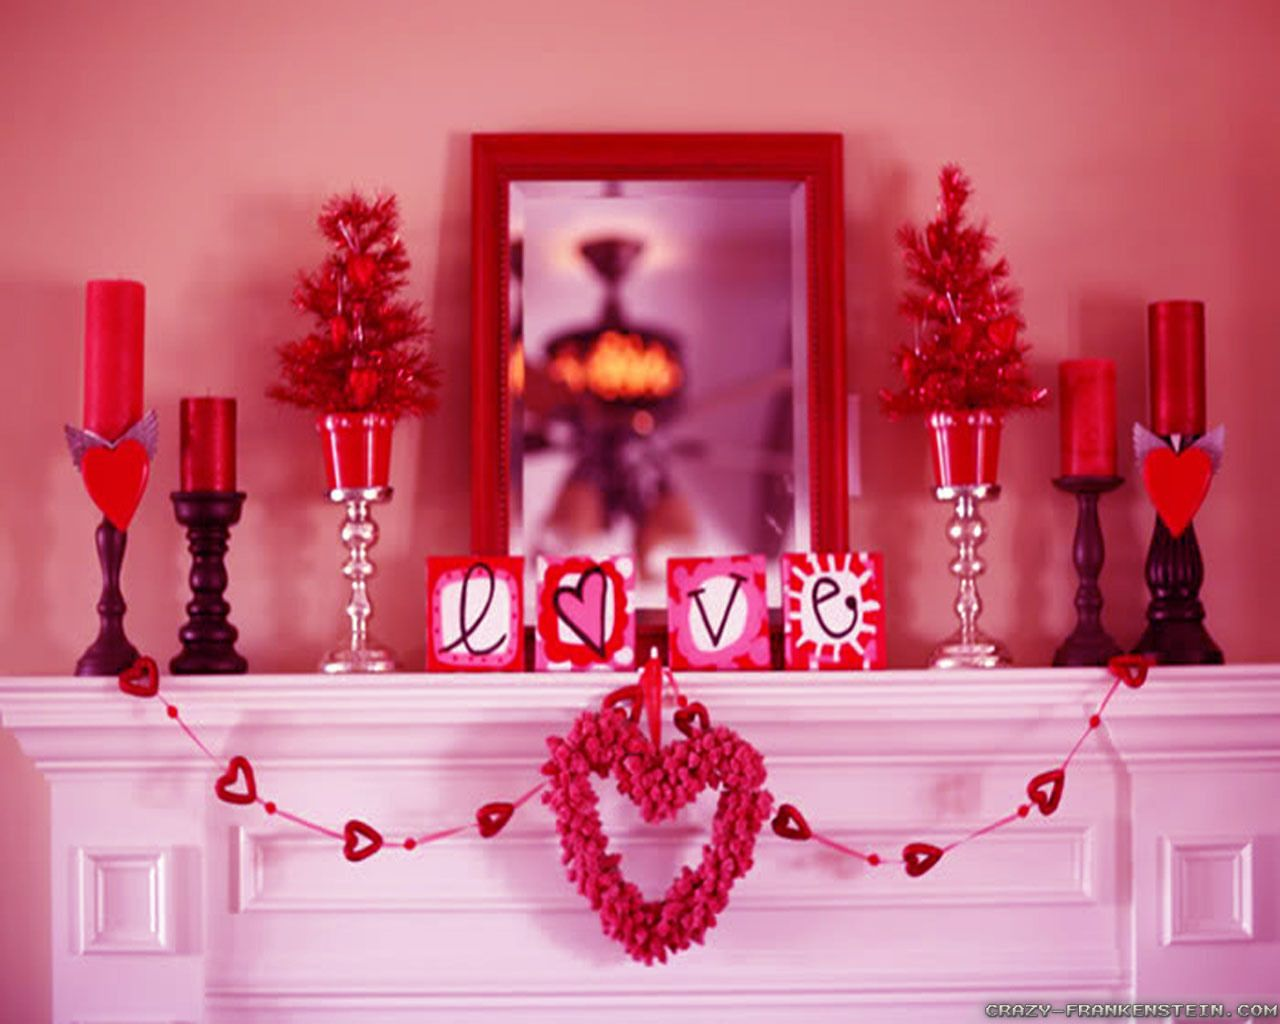 Valentine's Day Box Decorating Ideas. Valentinedecorationideasromanticvalentinesdaytabledecoration